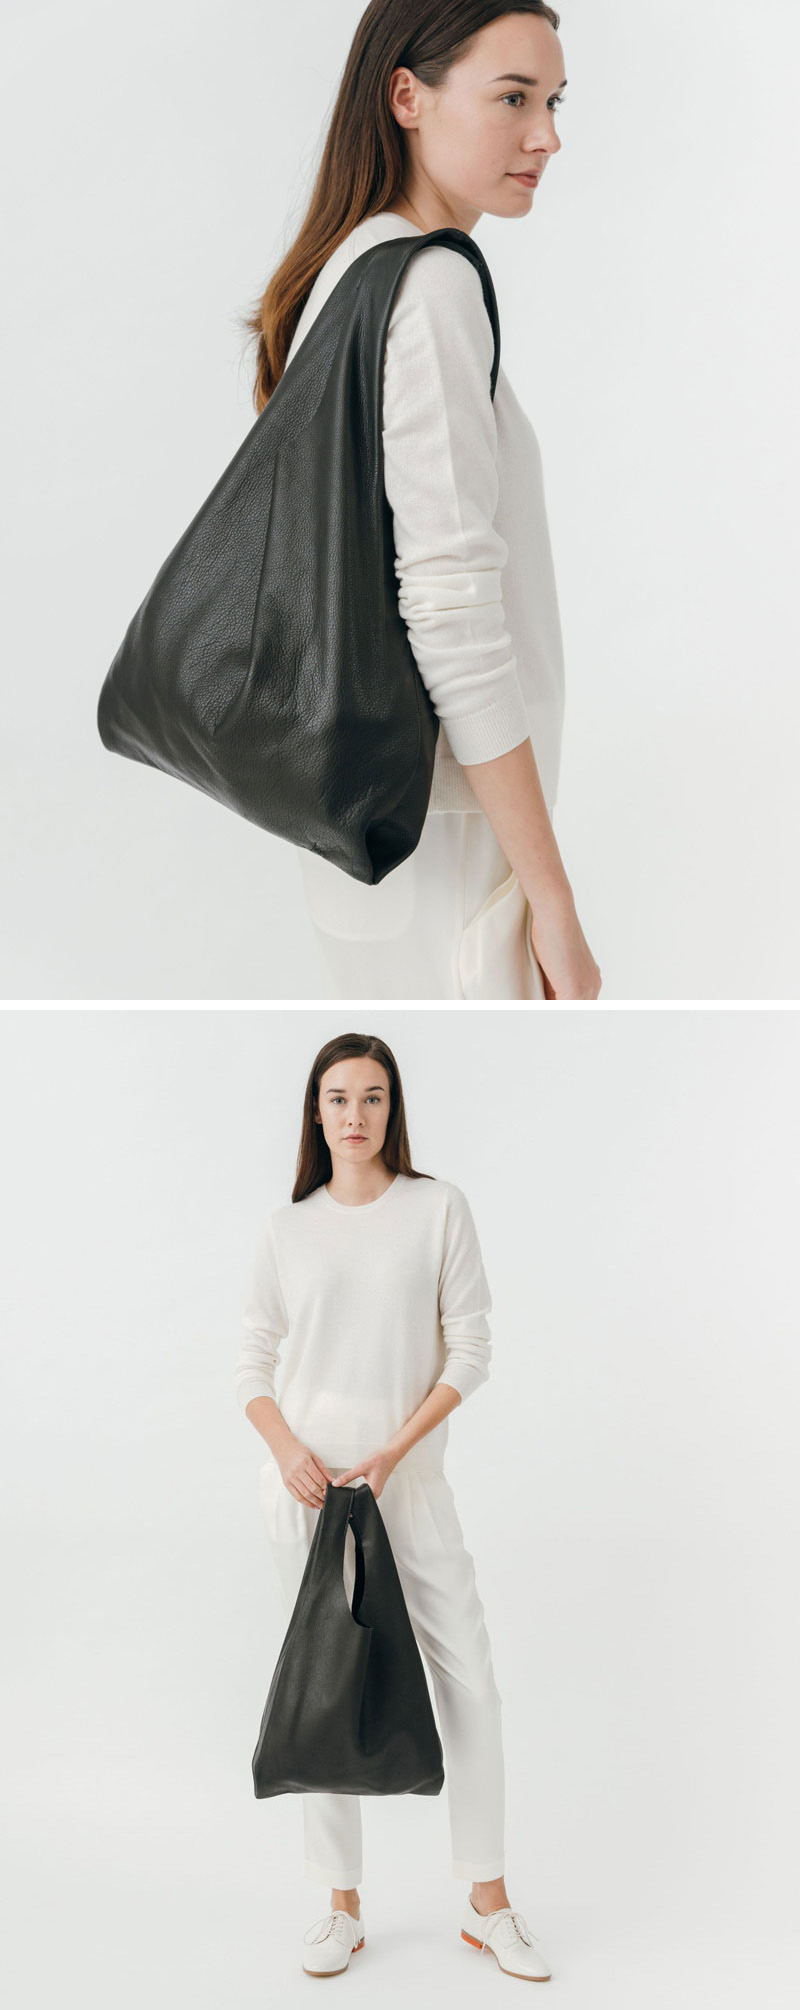 The soft leather of this modern black tote lets it drape over your shoulder effortlessly.